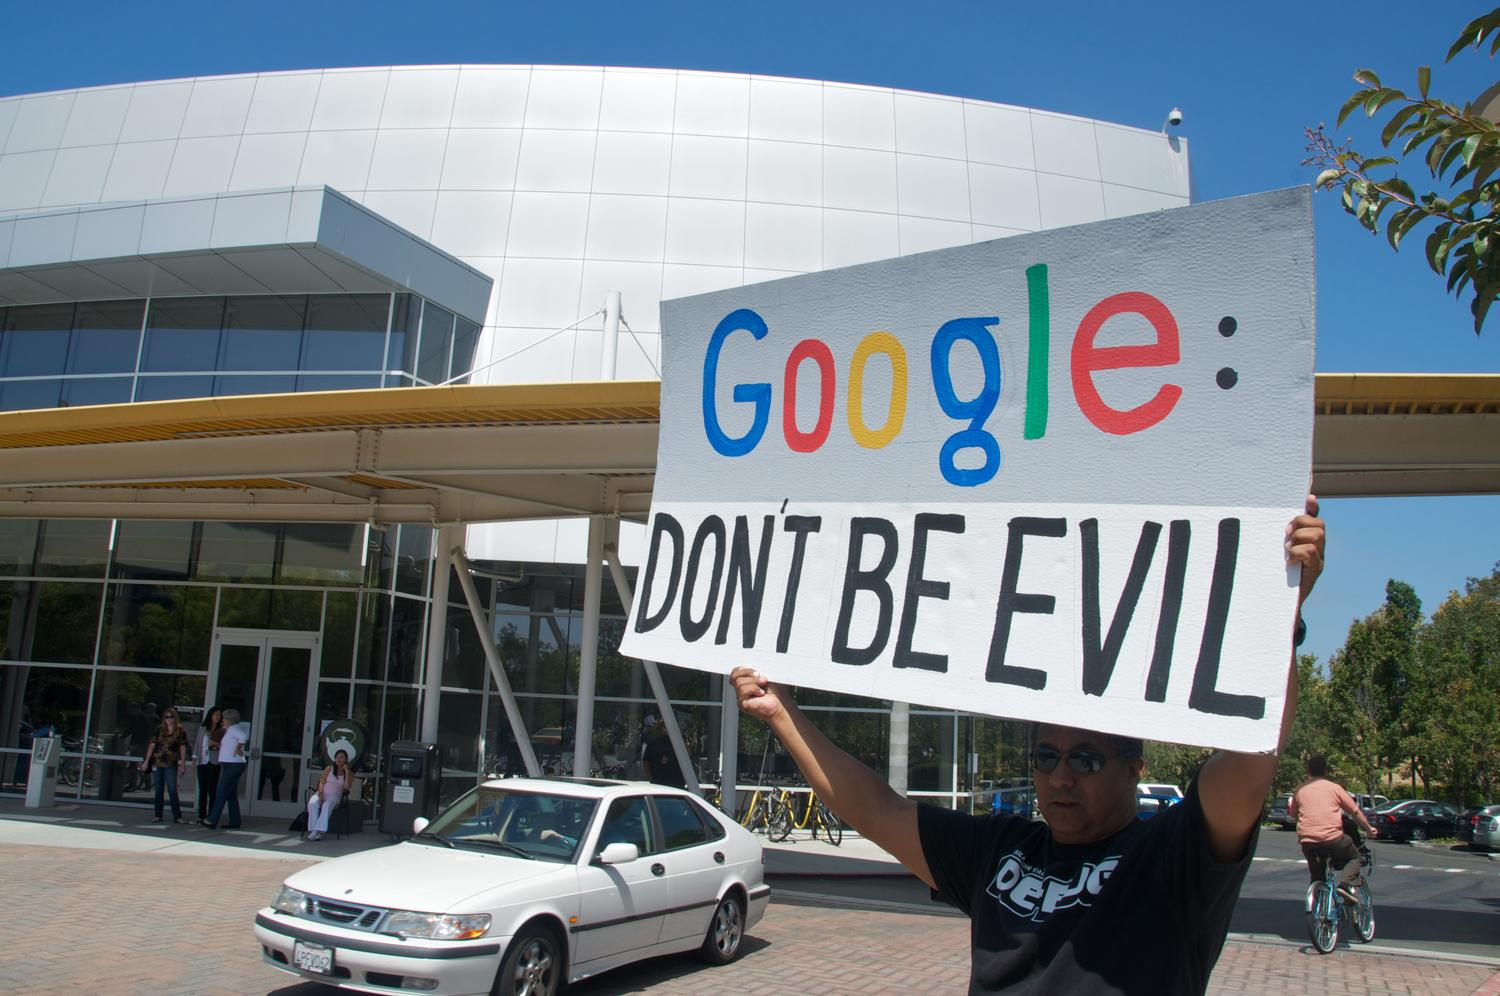 Conference disrupted by protester claiming Google 'builds robots that kill people'